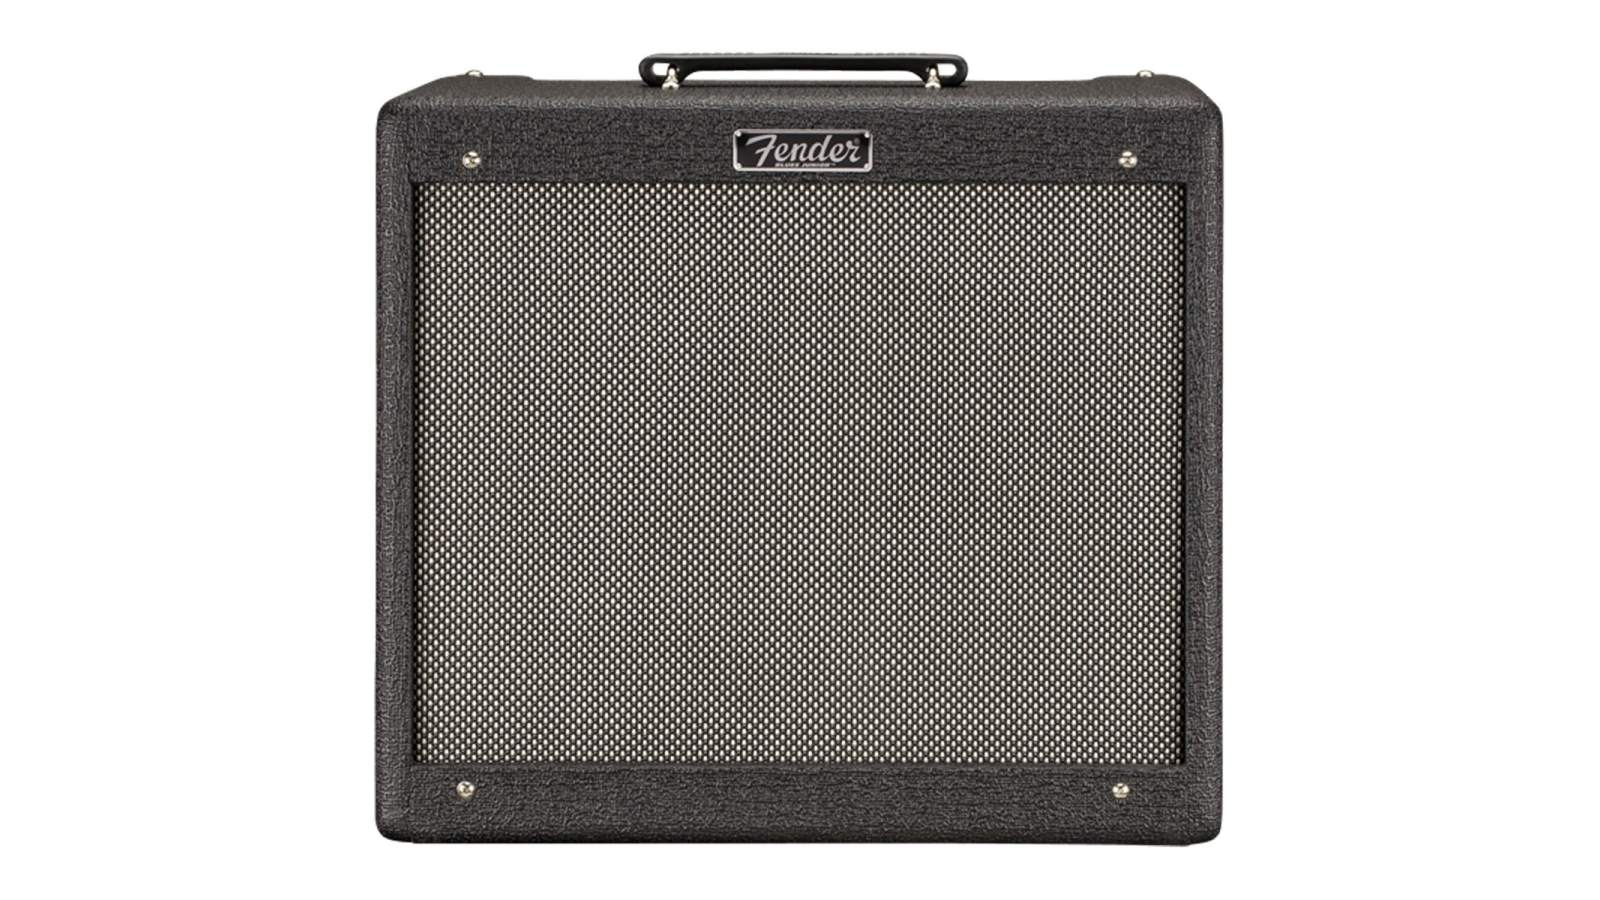 Fender Blues Junior IV HUMBOLDT FSR limited